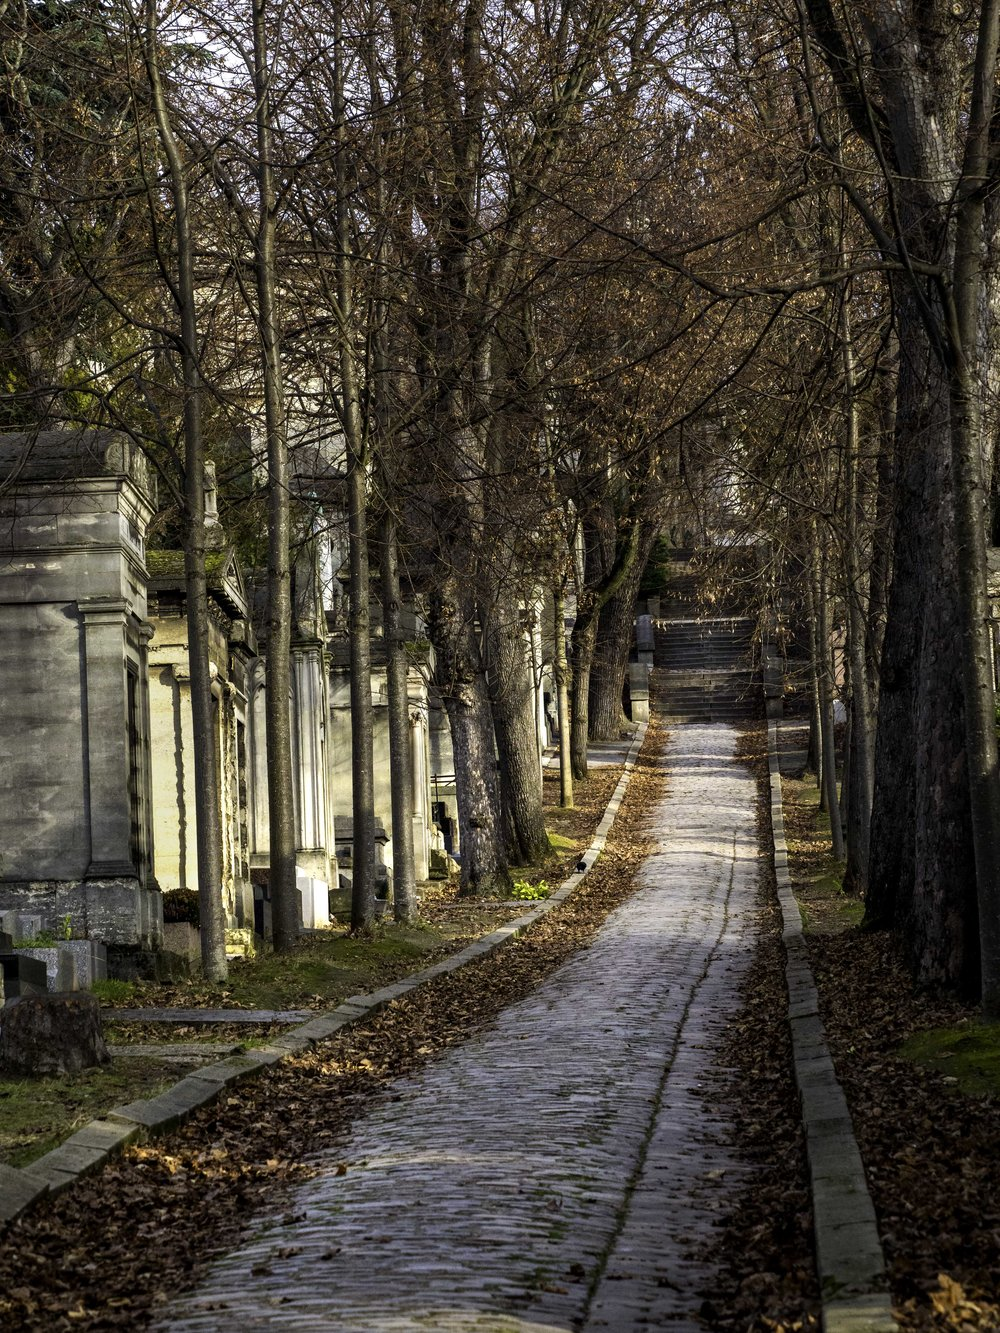 Père Lachaise Cemetery: Alleyway of Tombs and Mausoleums